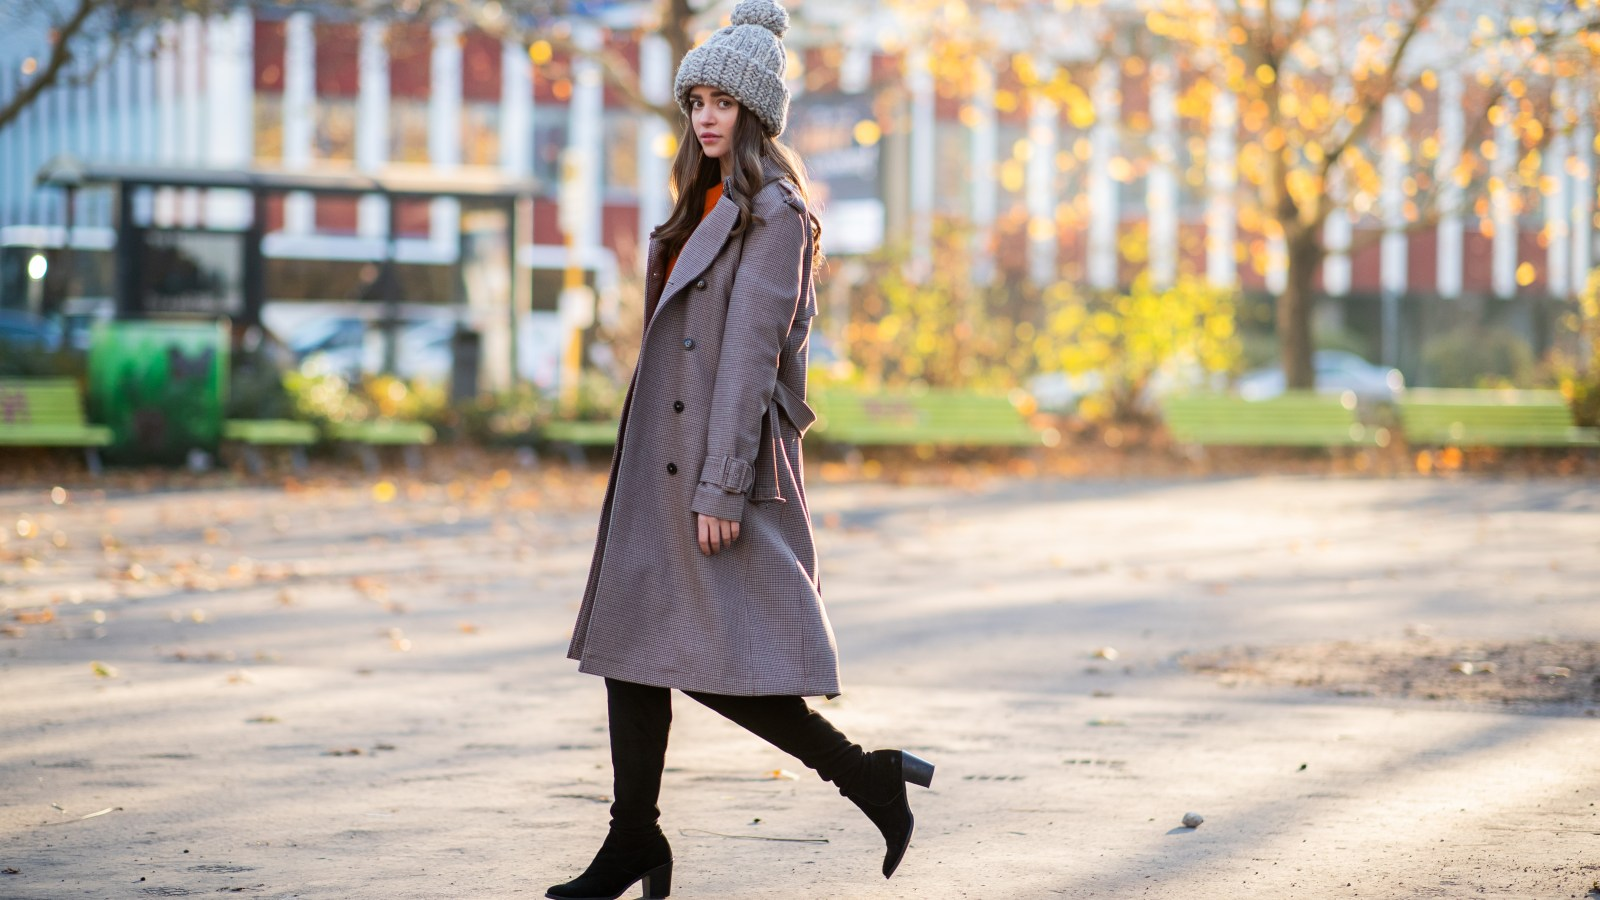 98ffa8b0db2 These Waterproof Over-The-Knee Boots Make Rainy Days Way Easier